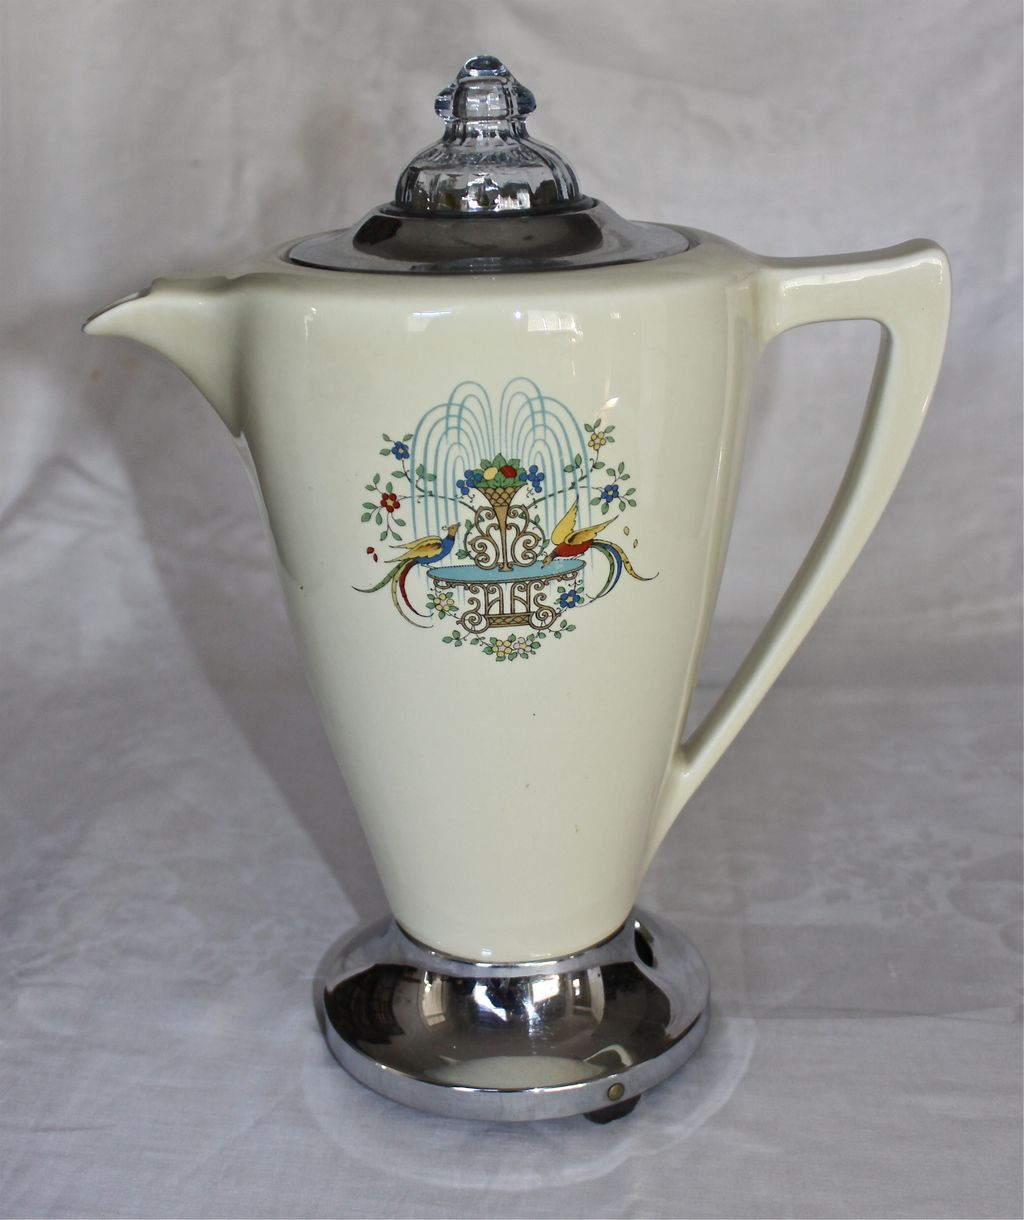 1930's GE/Hotpoint Porcelain Electric Percolator